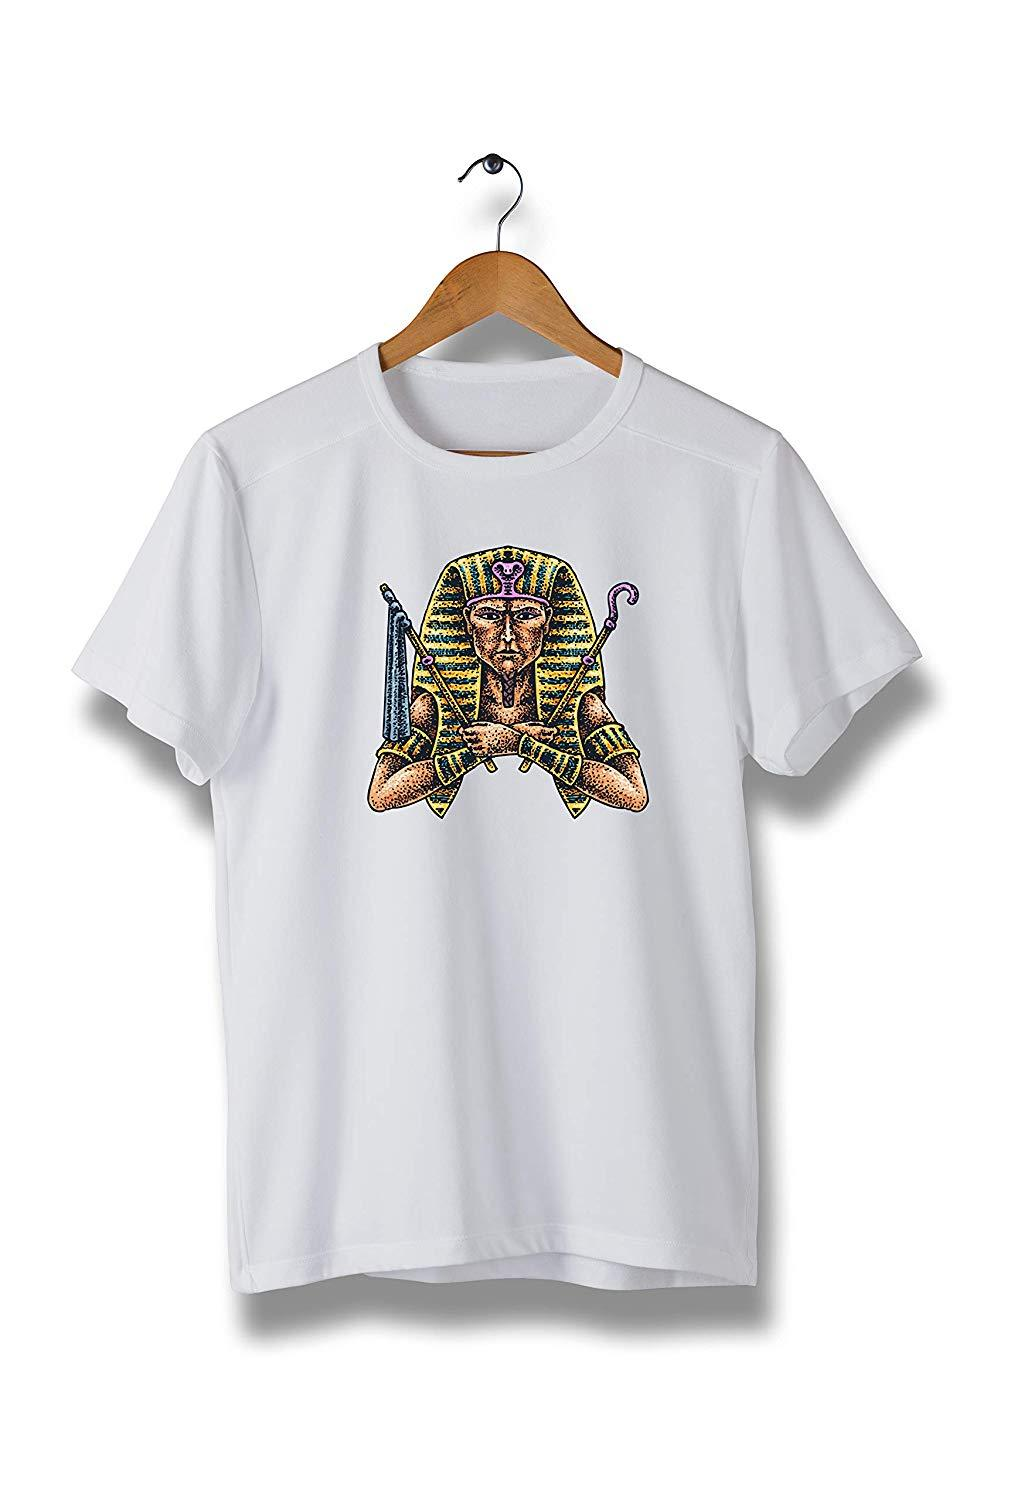 Colorful Big Pharaoh Egypt T-Shirt, Modern Tees for Men (Y36)